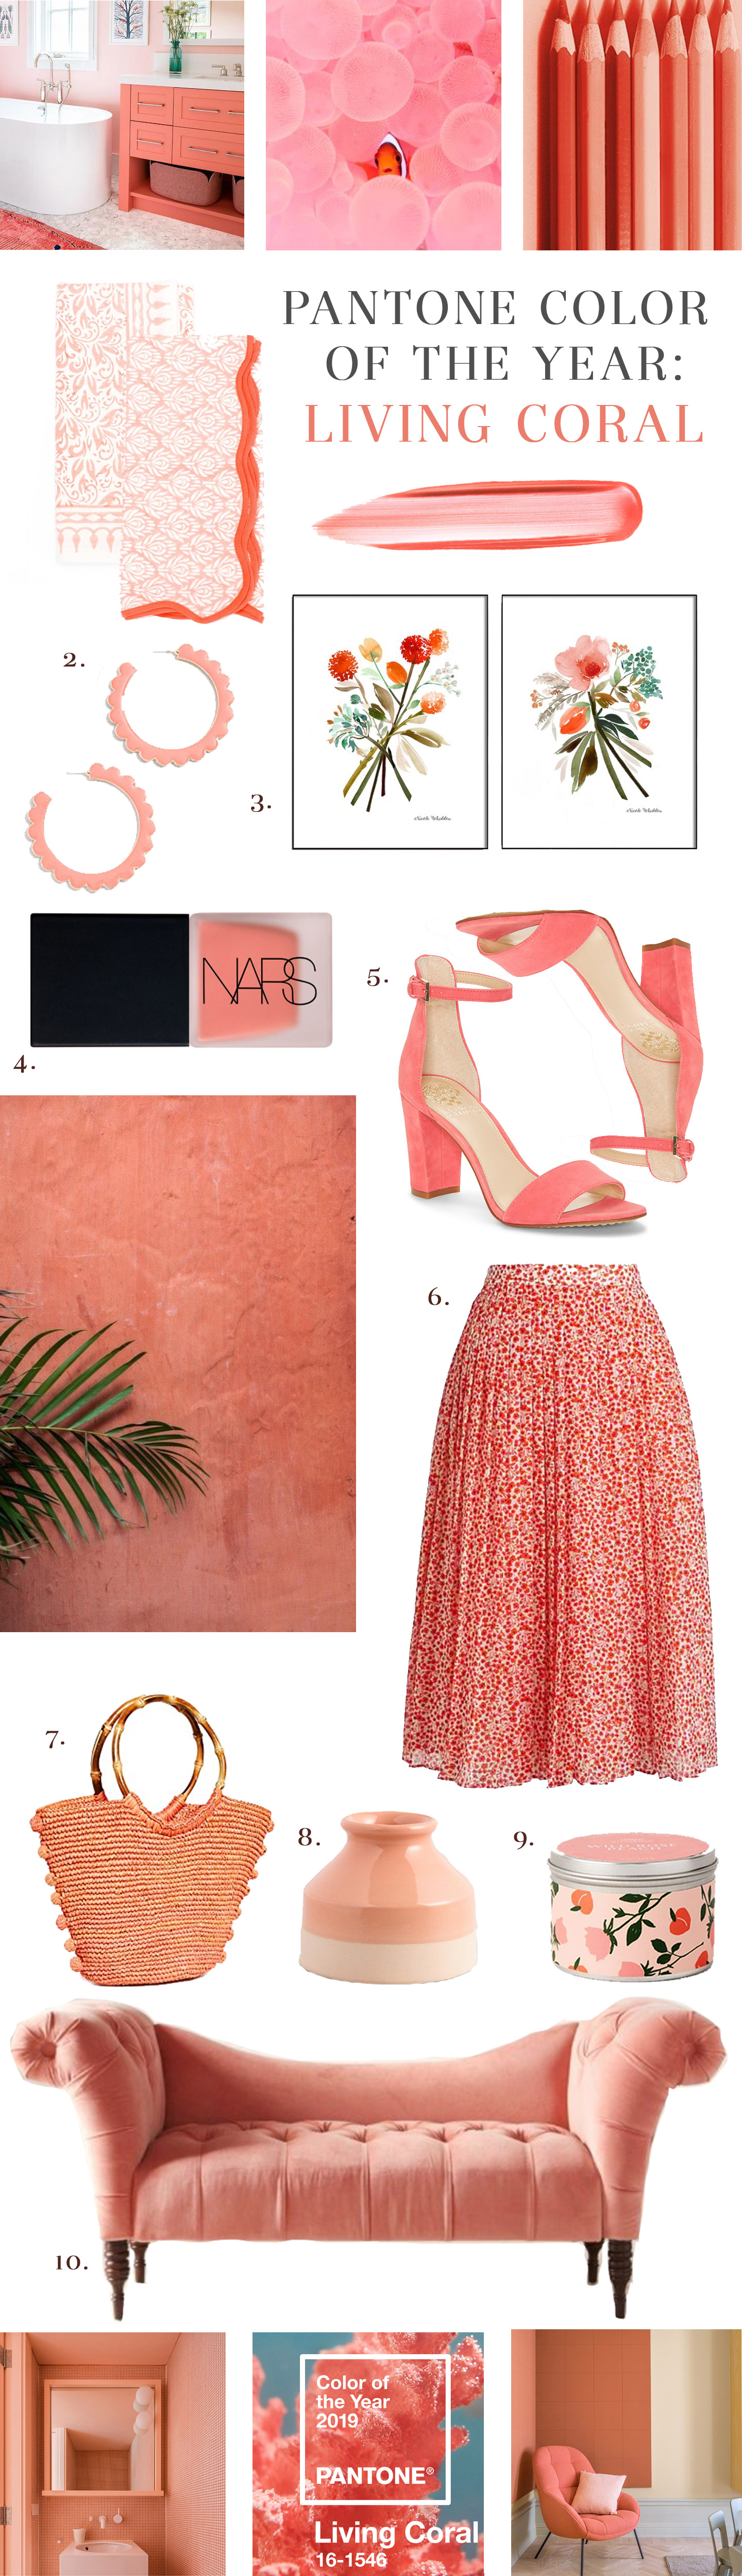 Pantone Color of the Year 2019 | Living Coral